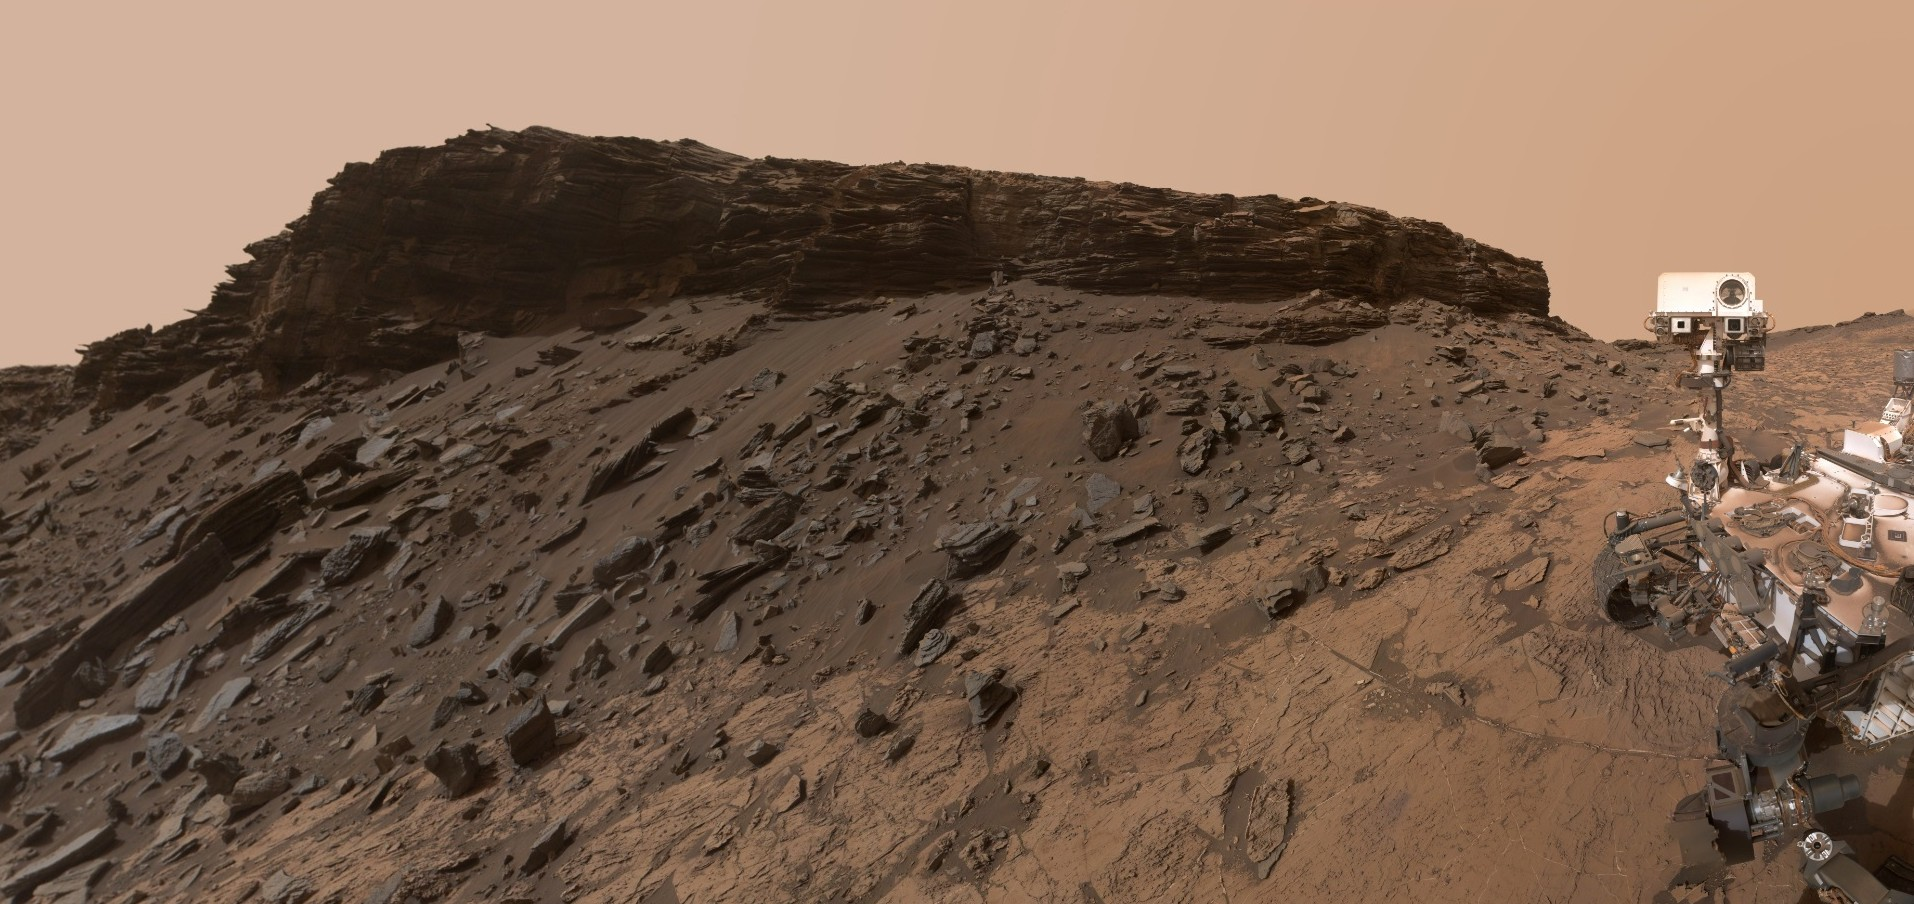 msl-curiosity-murray-buttes-selfie-pia20844-detail-3